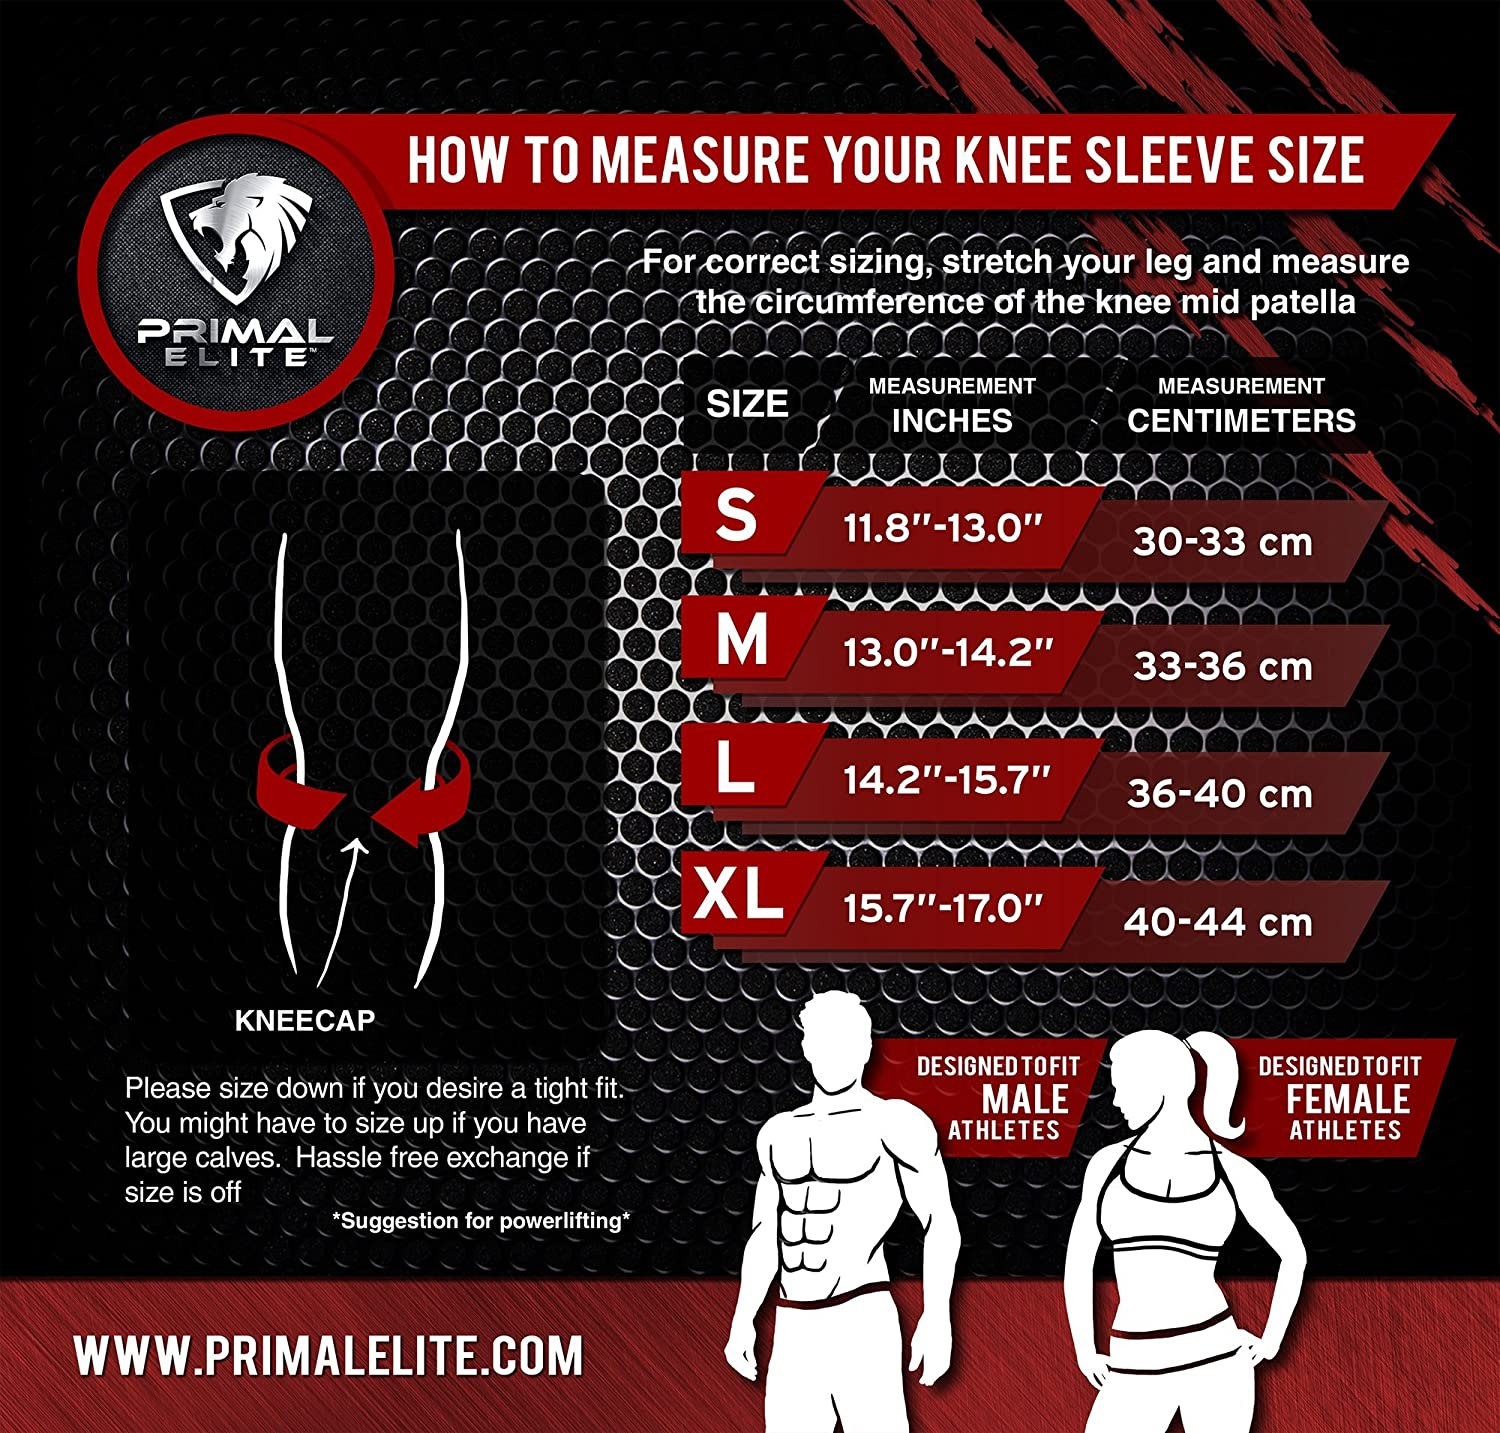 Primal Elite Knee Sleeve sizing